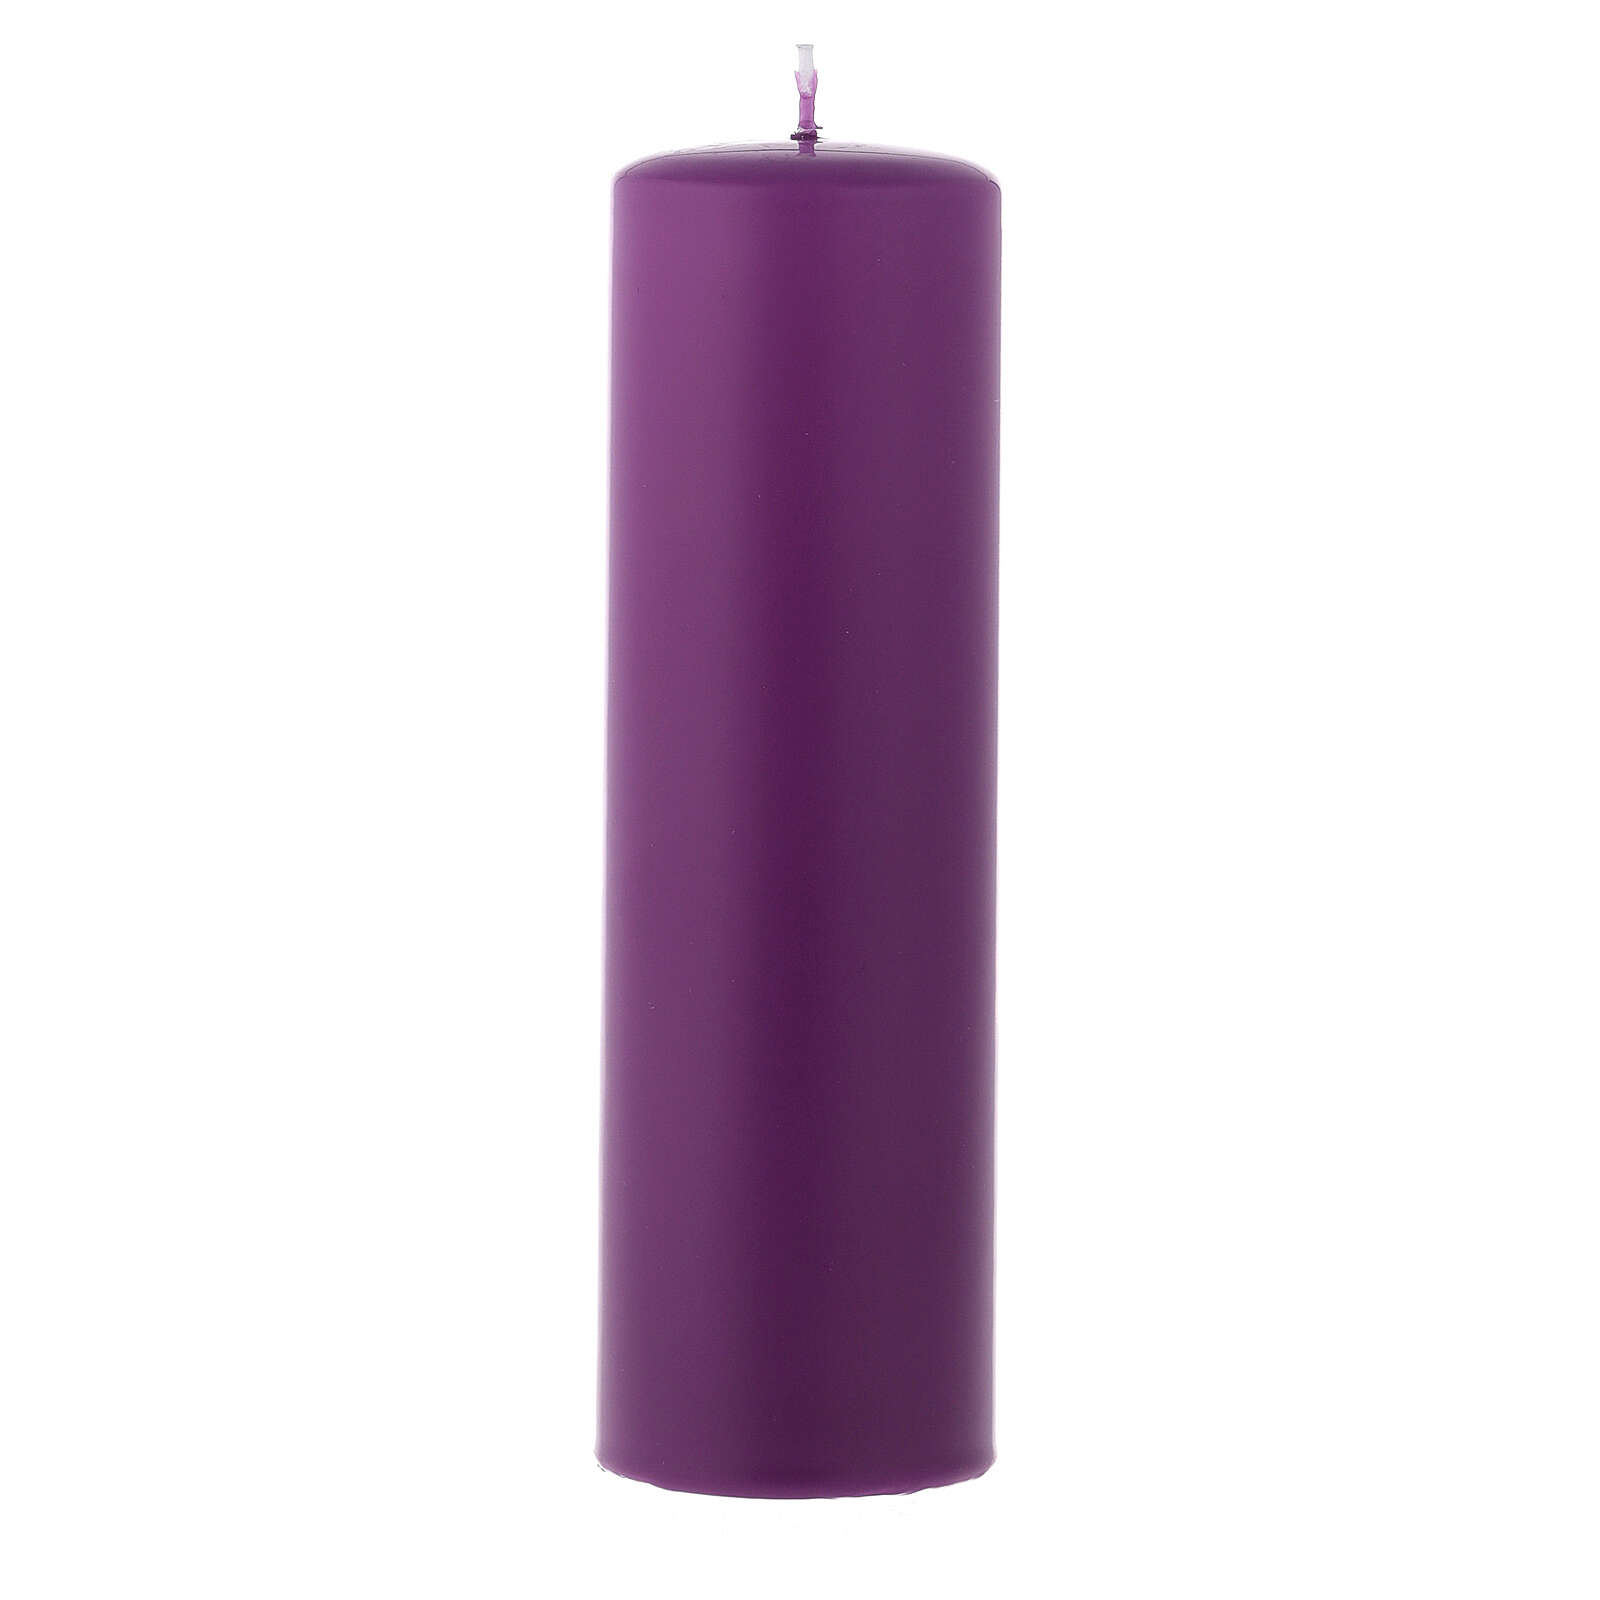 Kit of Advent candles 4 opaque candles 20x6 cm 3